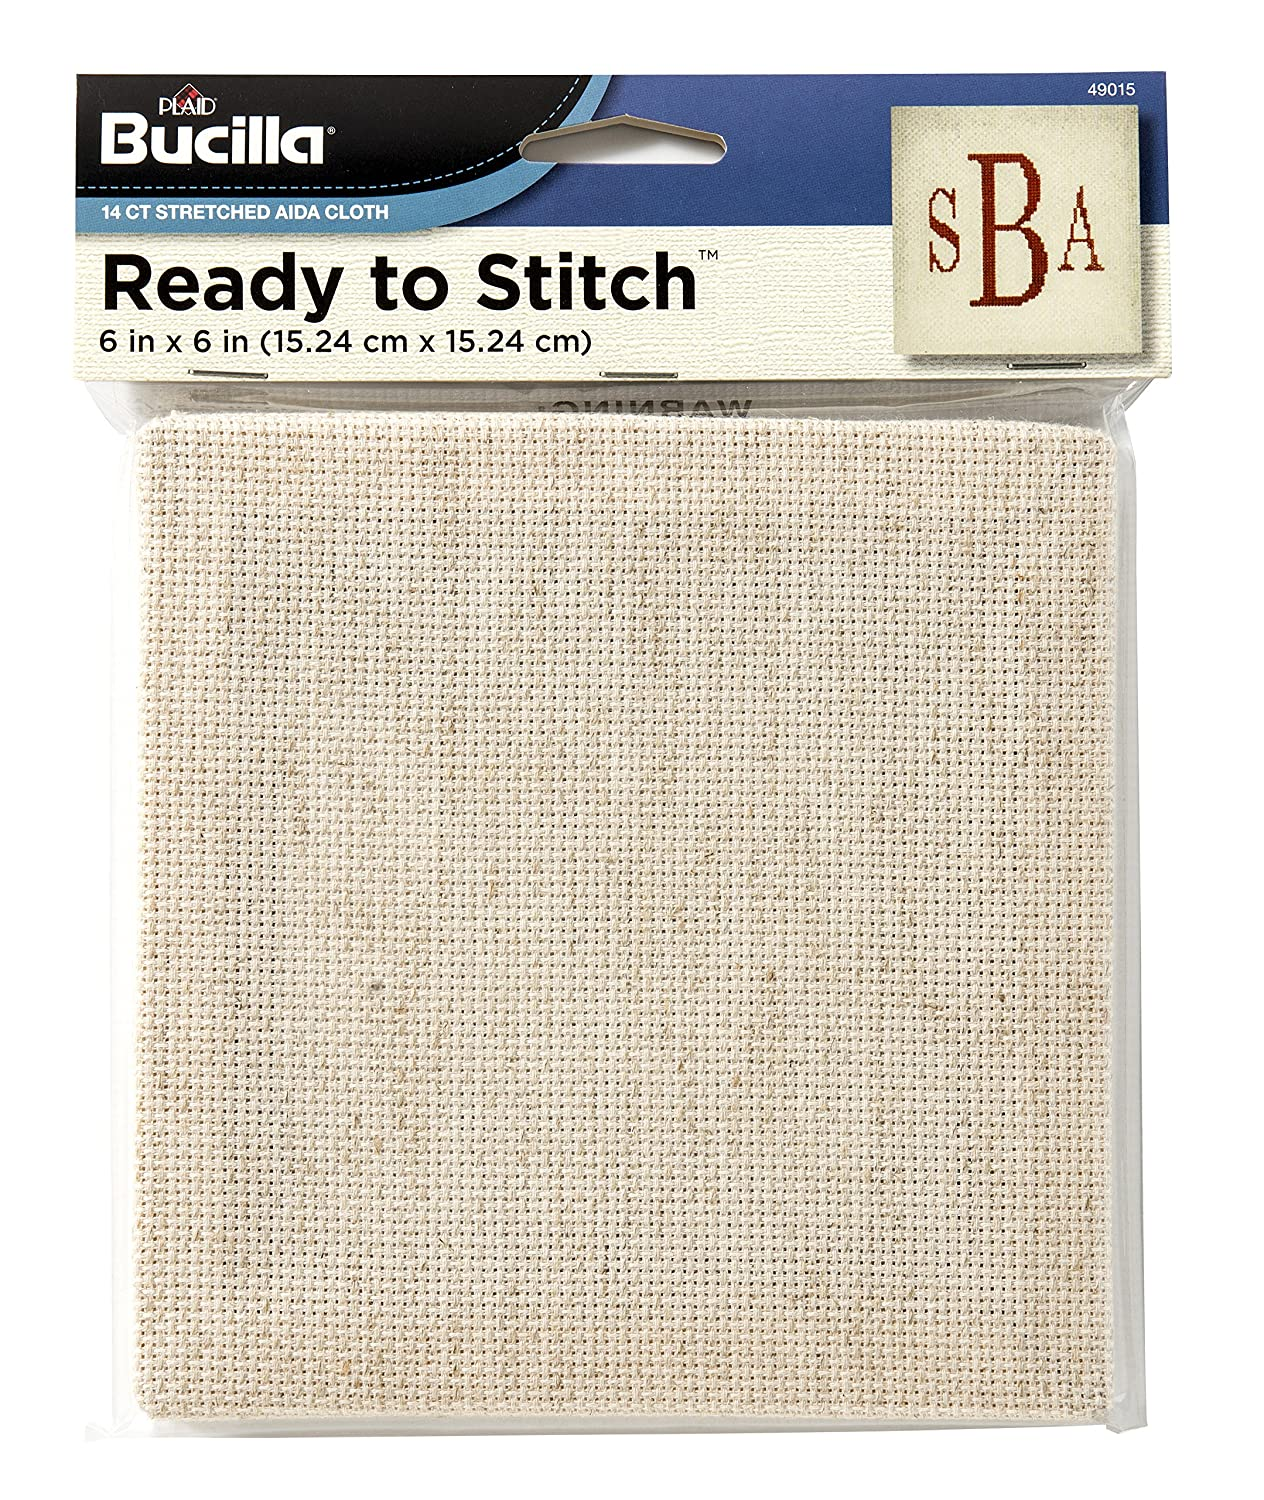 Bucilla Ready to Stitch Aida Cloth, 6 by 6-Inch, Natural Plaid Inc. 49015